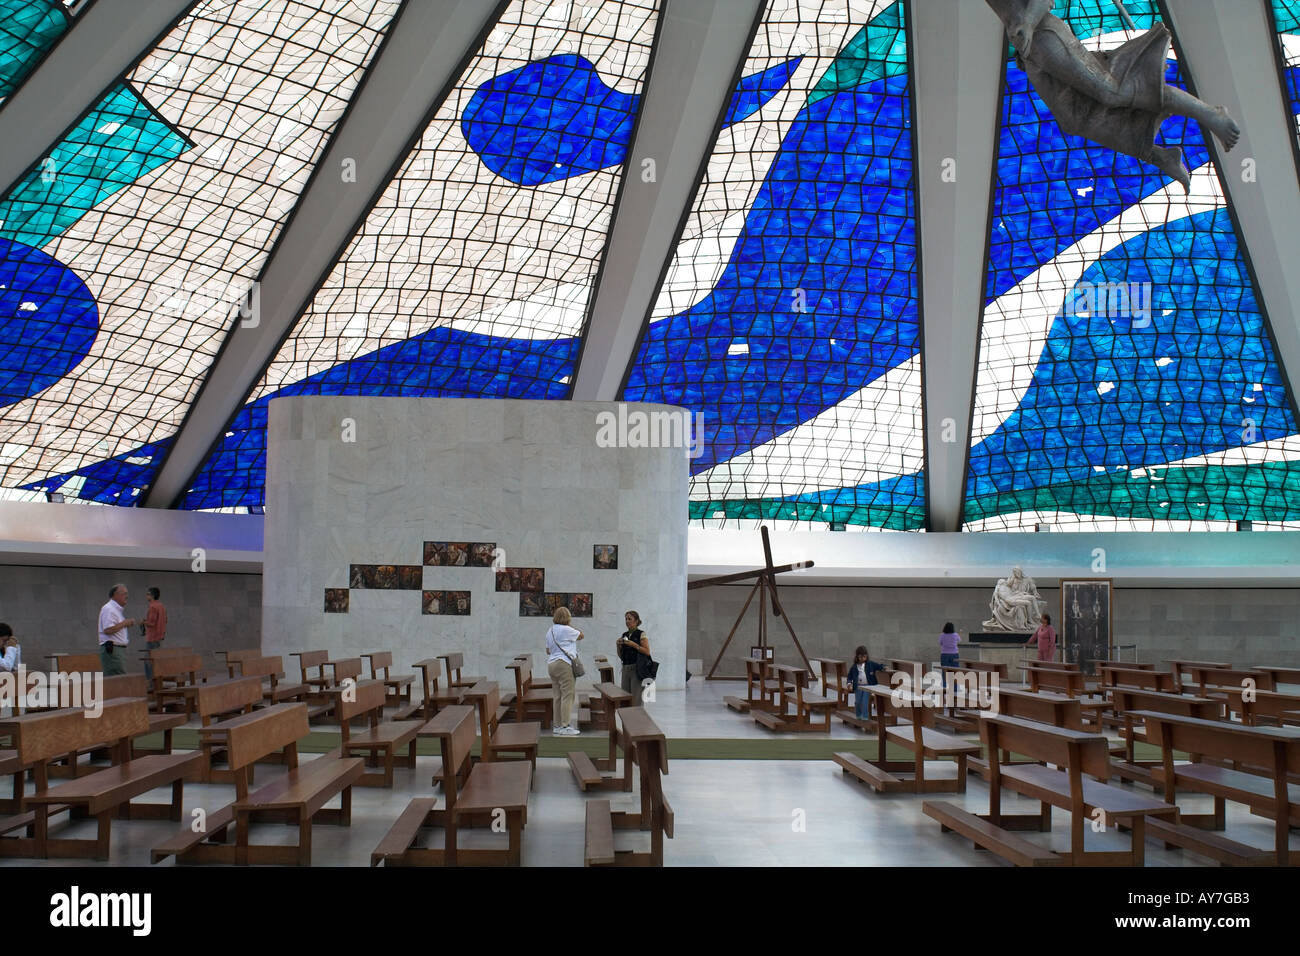 Metropolitan Cathedral Interior Brasilia Brazil Stock Photo